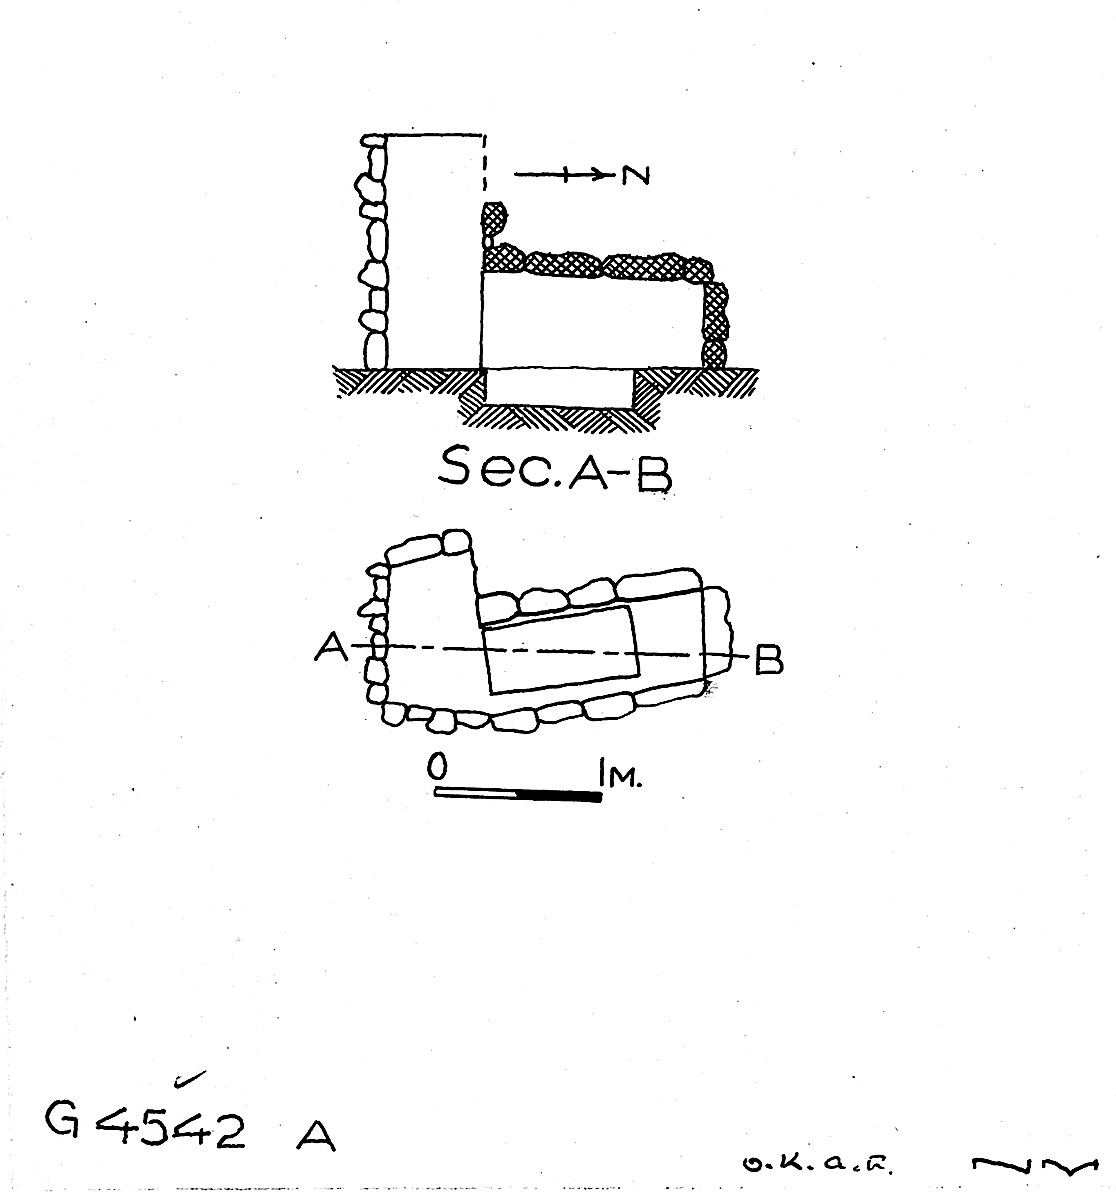 Maps and plans: G 4542, Shaft A